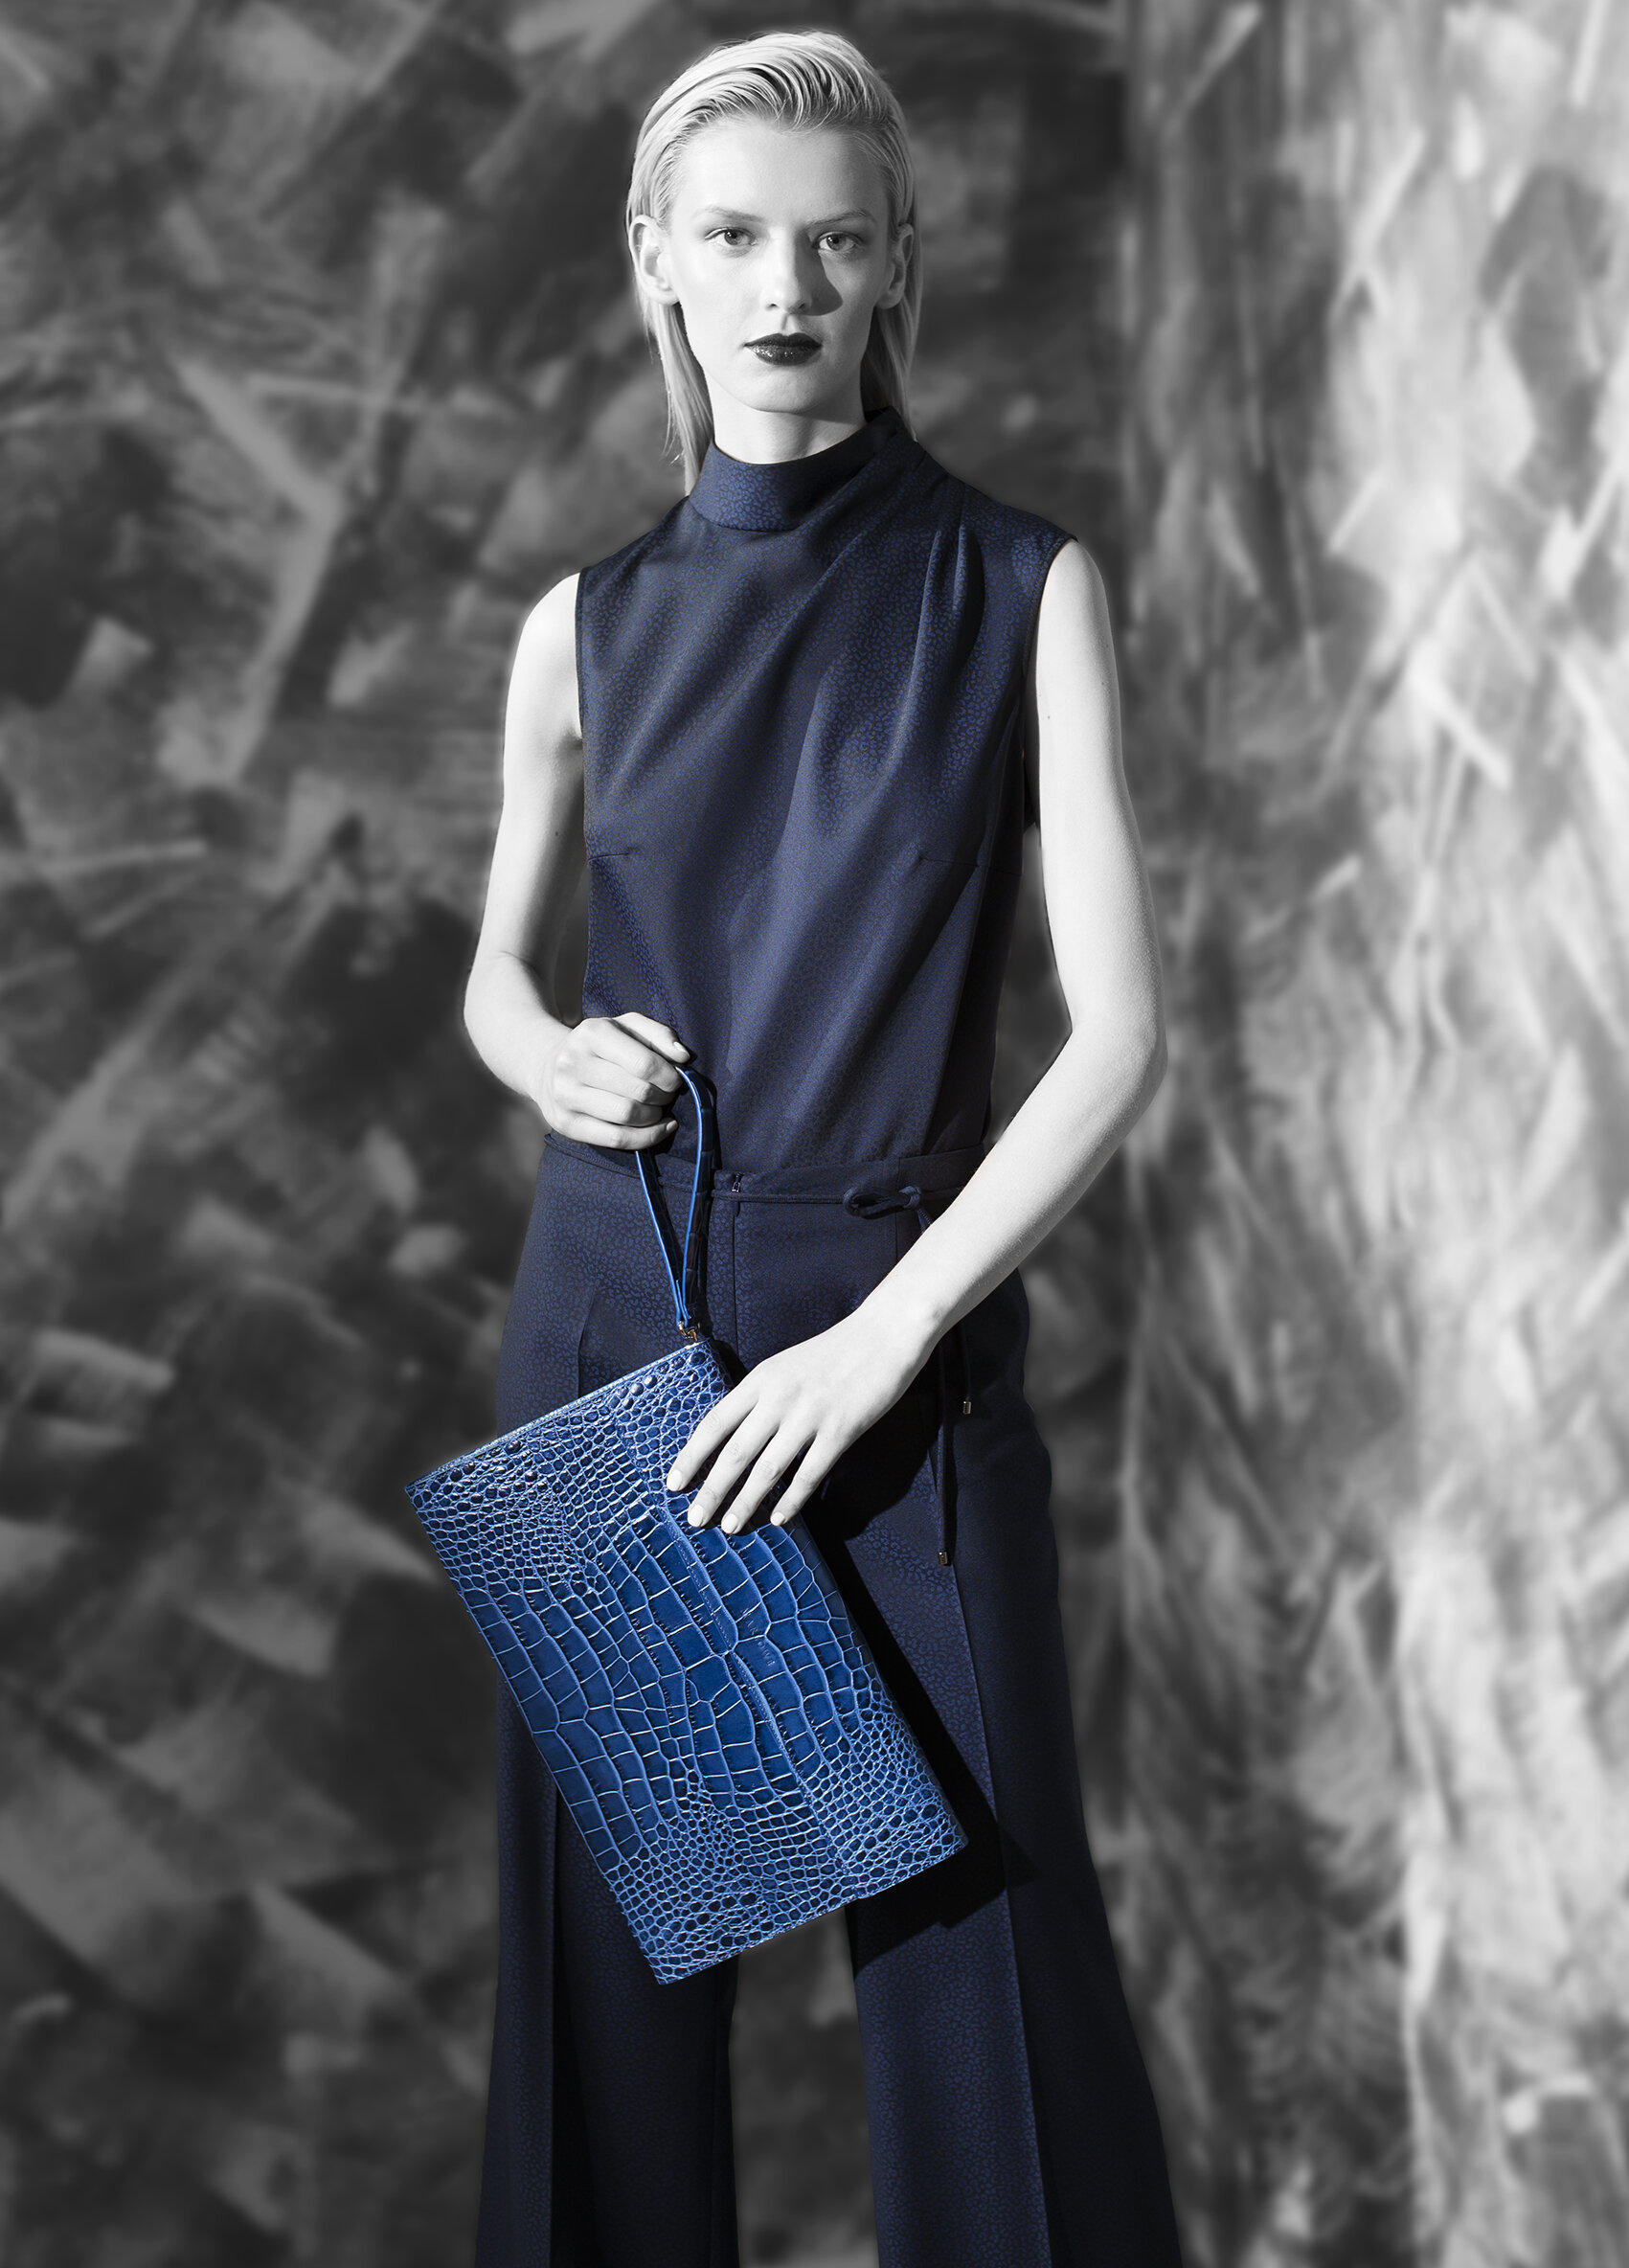 Abstract jacquard superfine wool funnel drape neck top and wide leg trouser with belt tie  teal onyx azurite onyx midnight opal   Crocodile calf-skin clutch